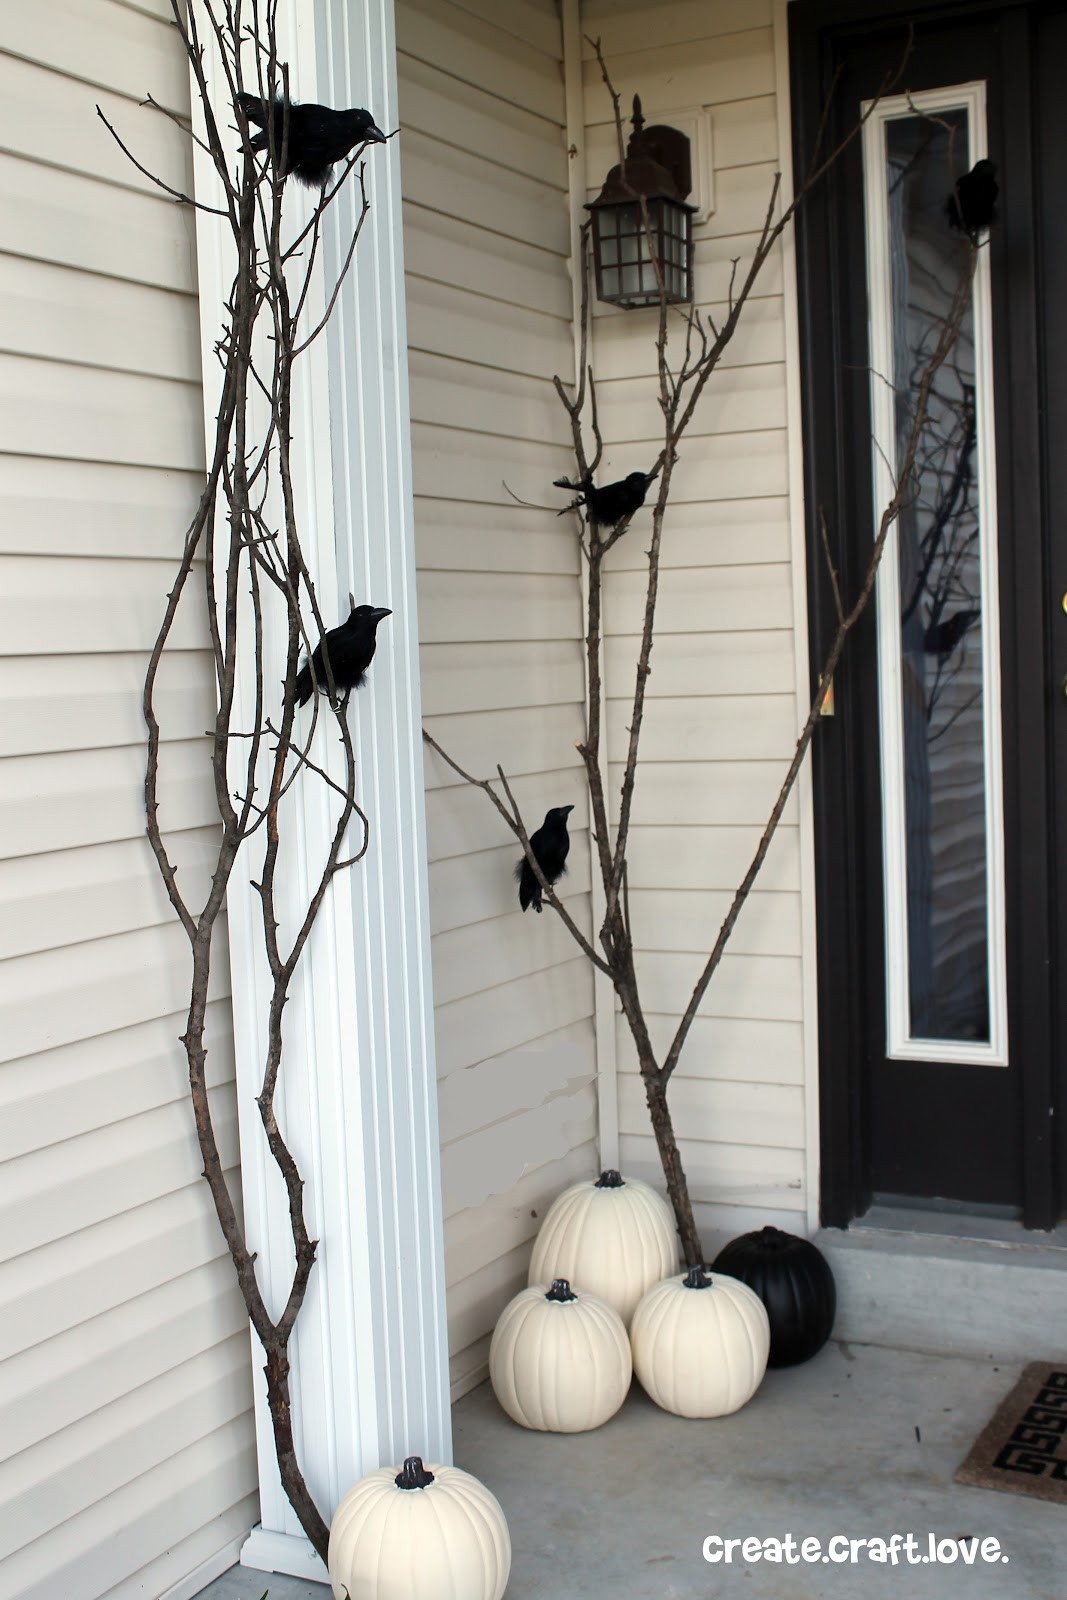 Outdoor Halloween Decorations 50 Best Diy Halloween Outdoor Decorations for 2019